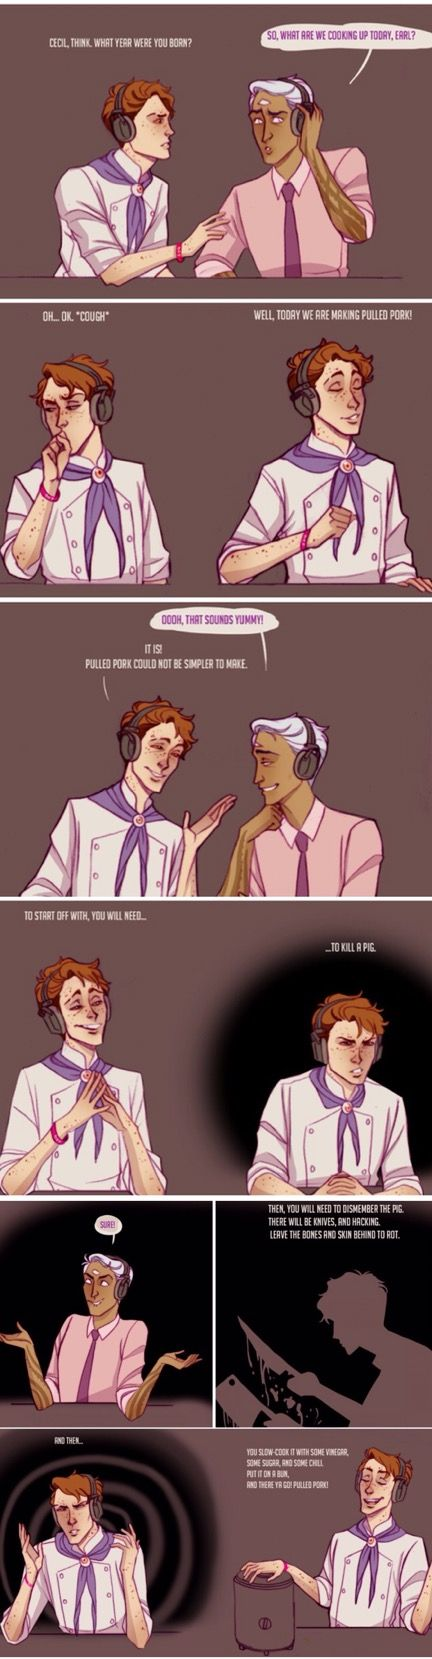 Welcome to Night Vale episode 61 - BRINY DEPTHS cooking segment with Earl Harlan and Cecil Palmer comic by videntefernandez on Tumblr